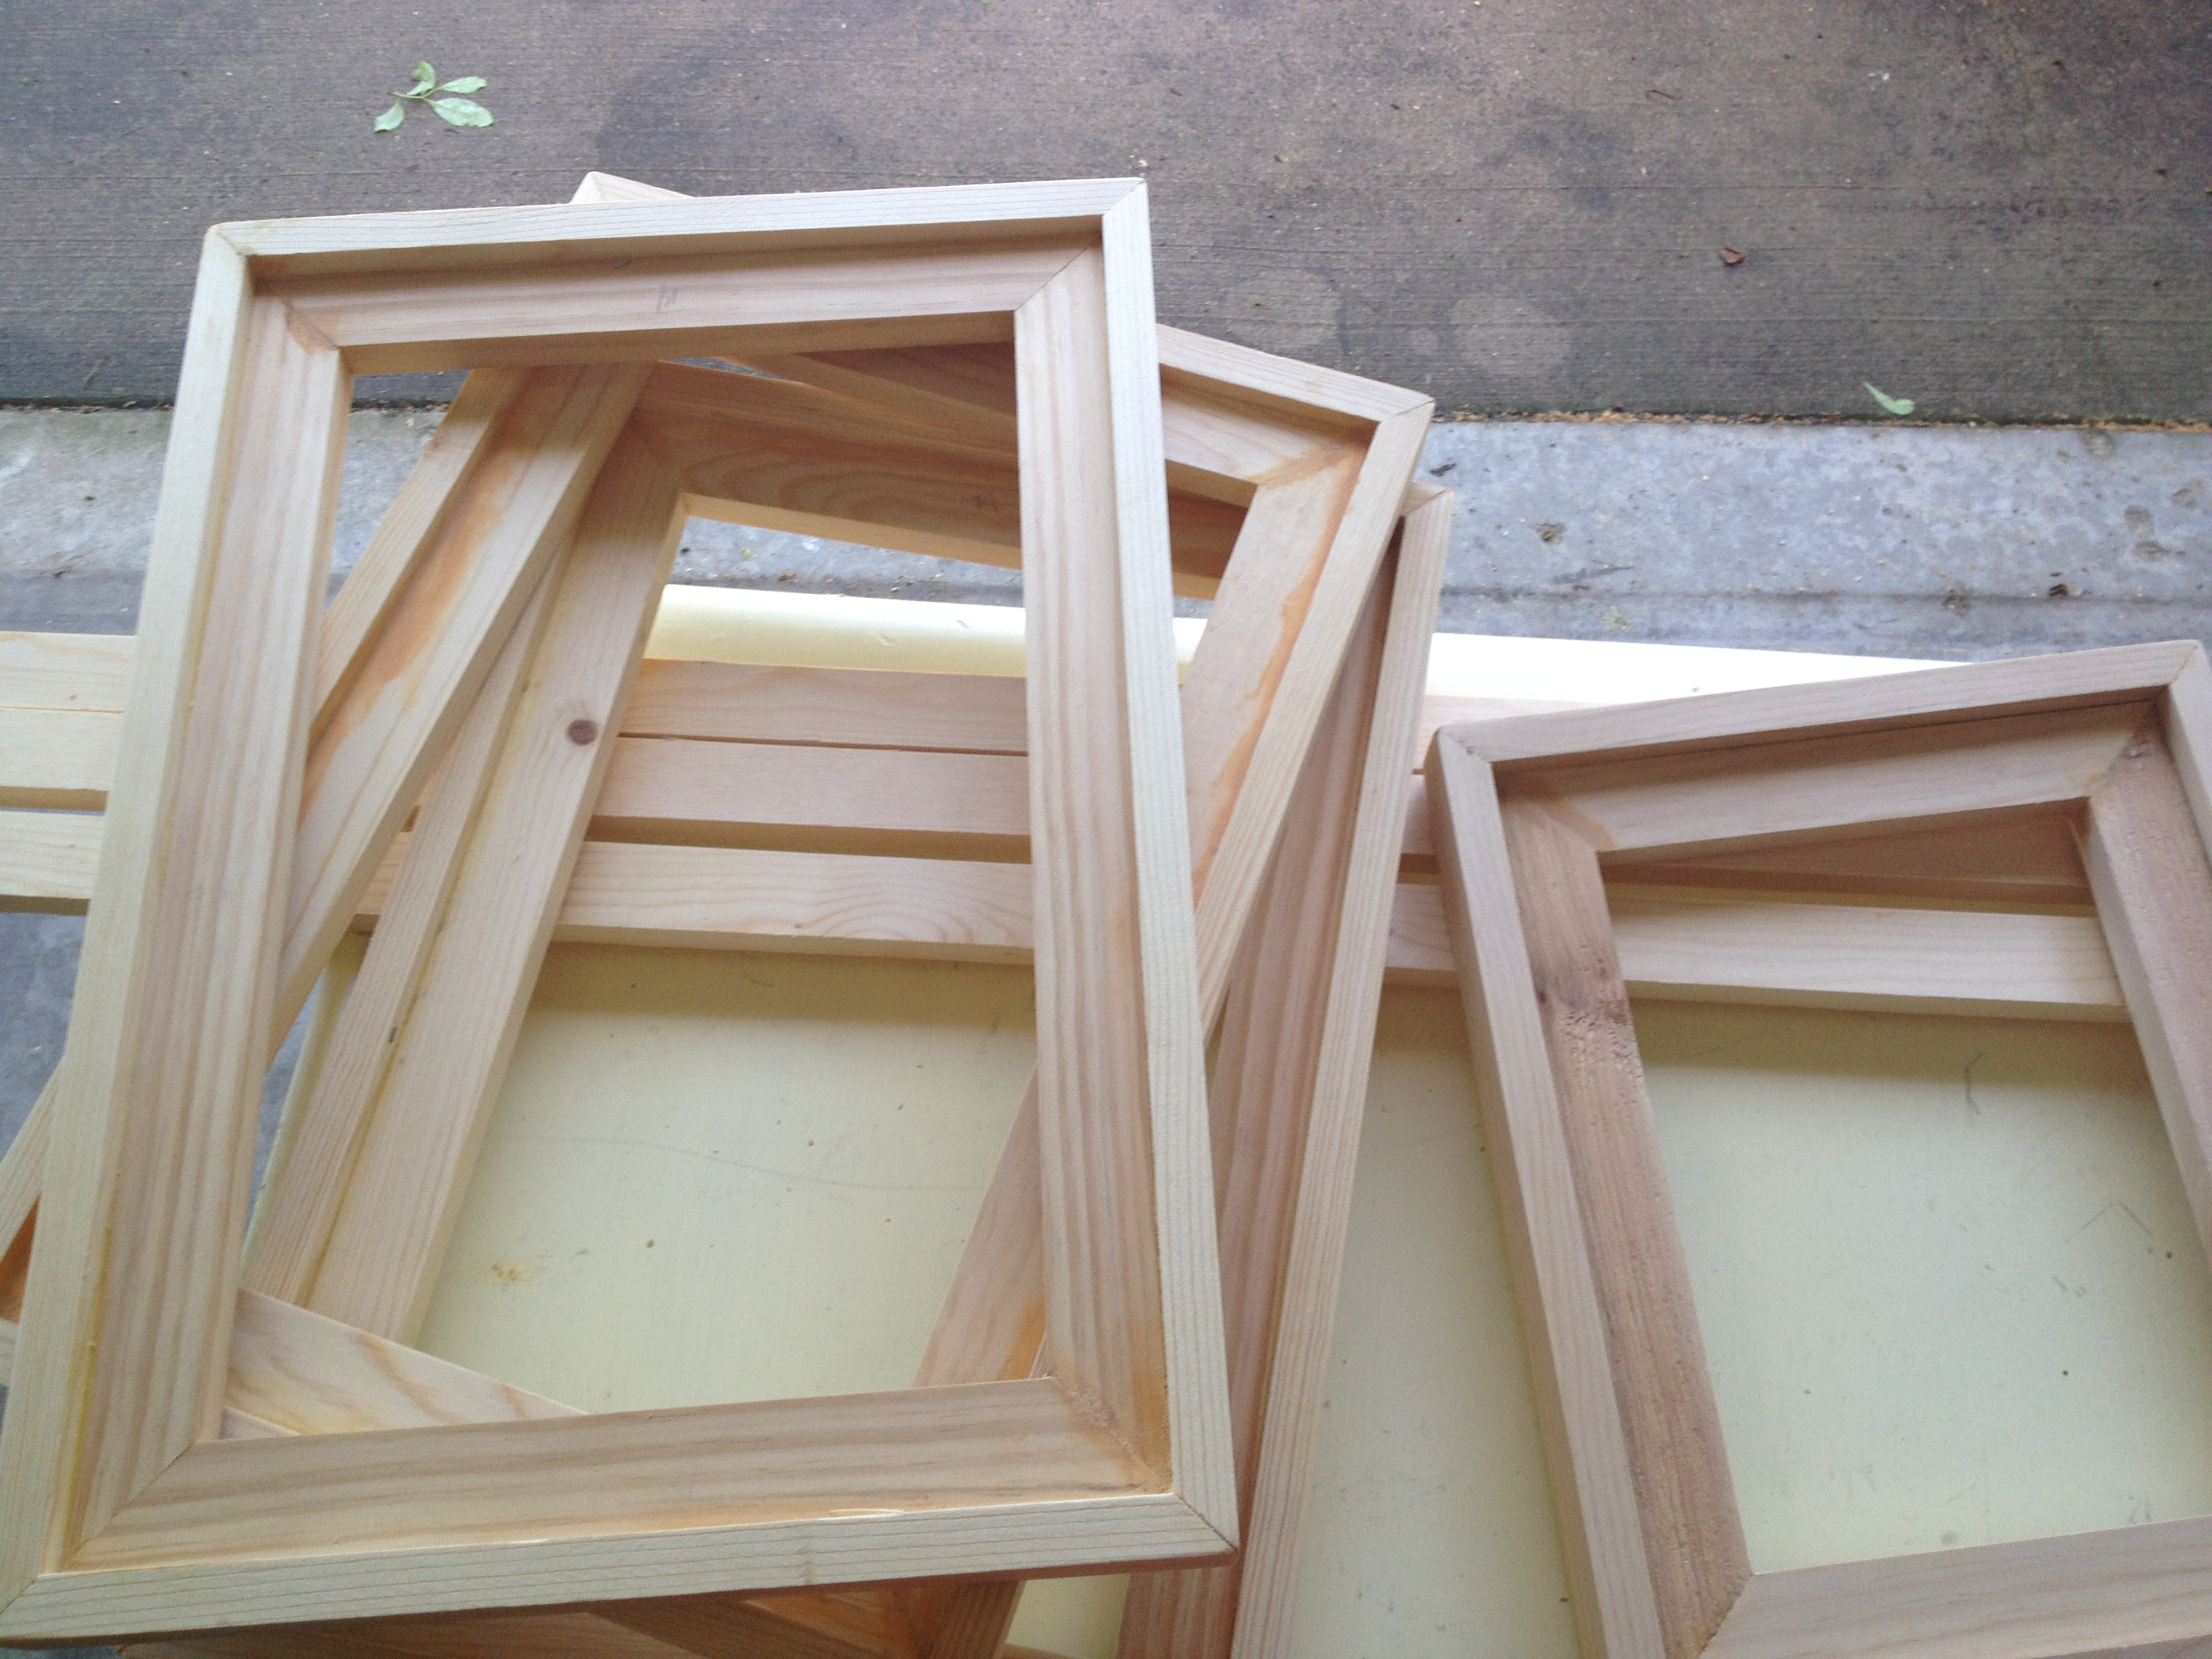 I have always wanted to make my own frames. It was time for some n ...